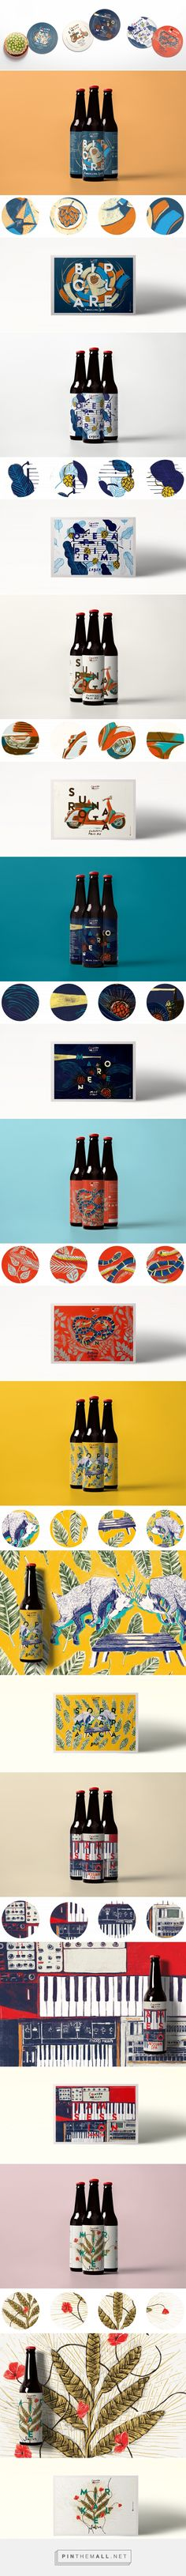 Contromano Beer Branding and Packaging by Kero   Fivestar Branding Agency – Design and Branding Agency & Curated Inspiration Gallery #beerpackaging #beer #packaging #package #packagedesign #design #designinspiration